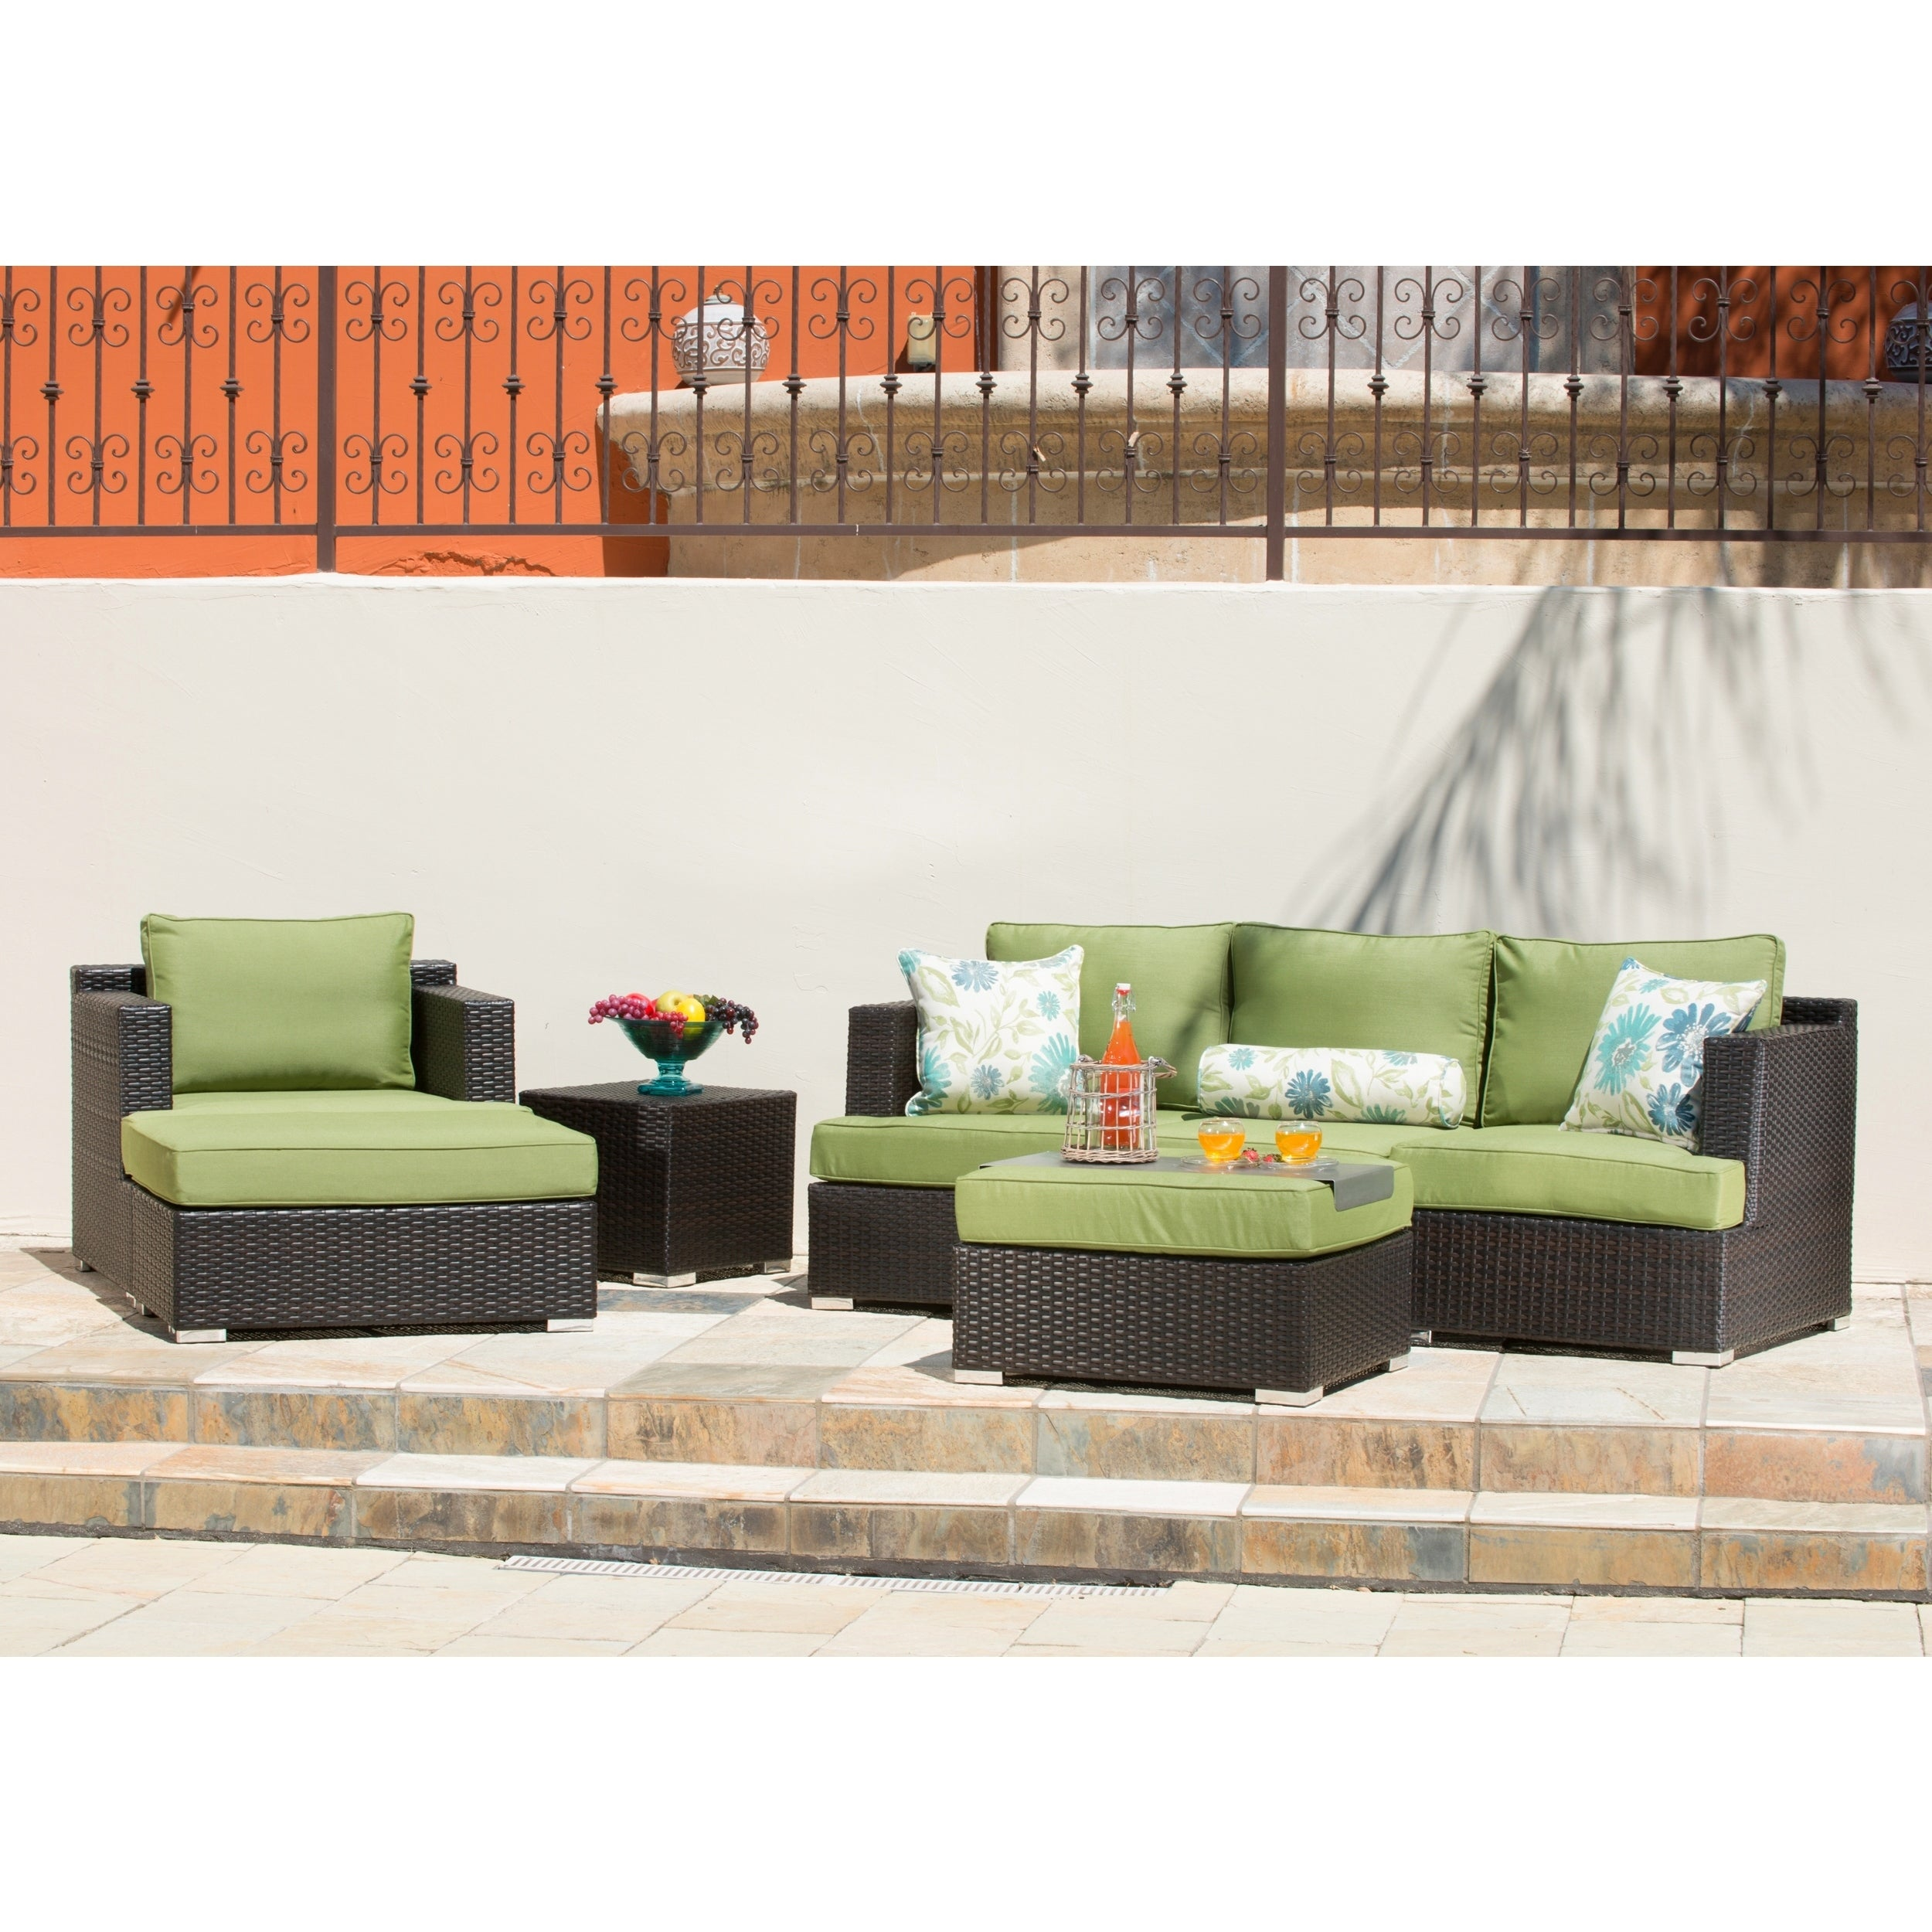 Corvus Morgan Outdoor 7-piece Brown Wicker Sectional Sofa Set with  Sunbrella Cushions